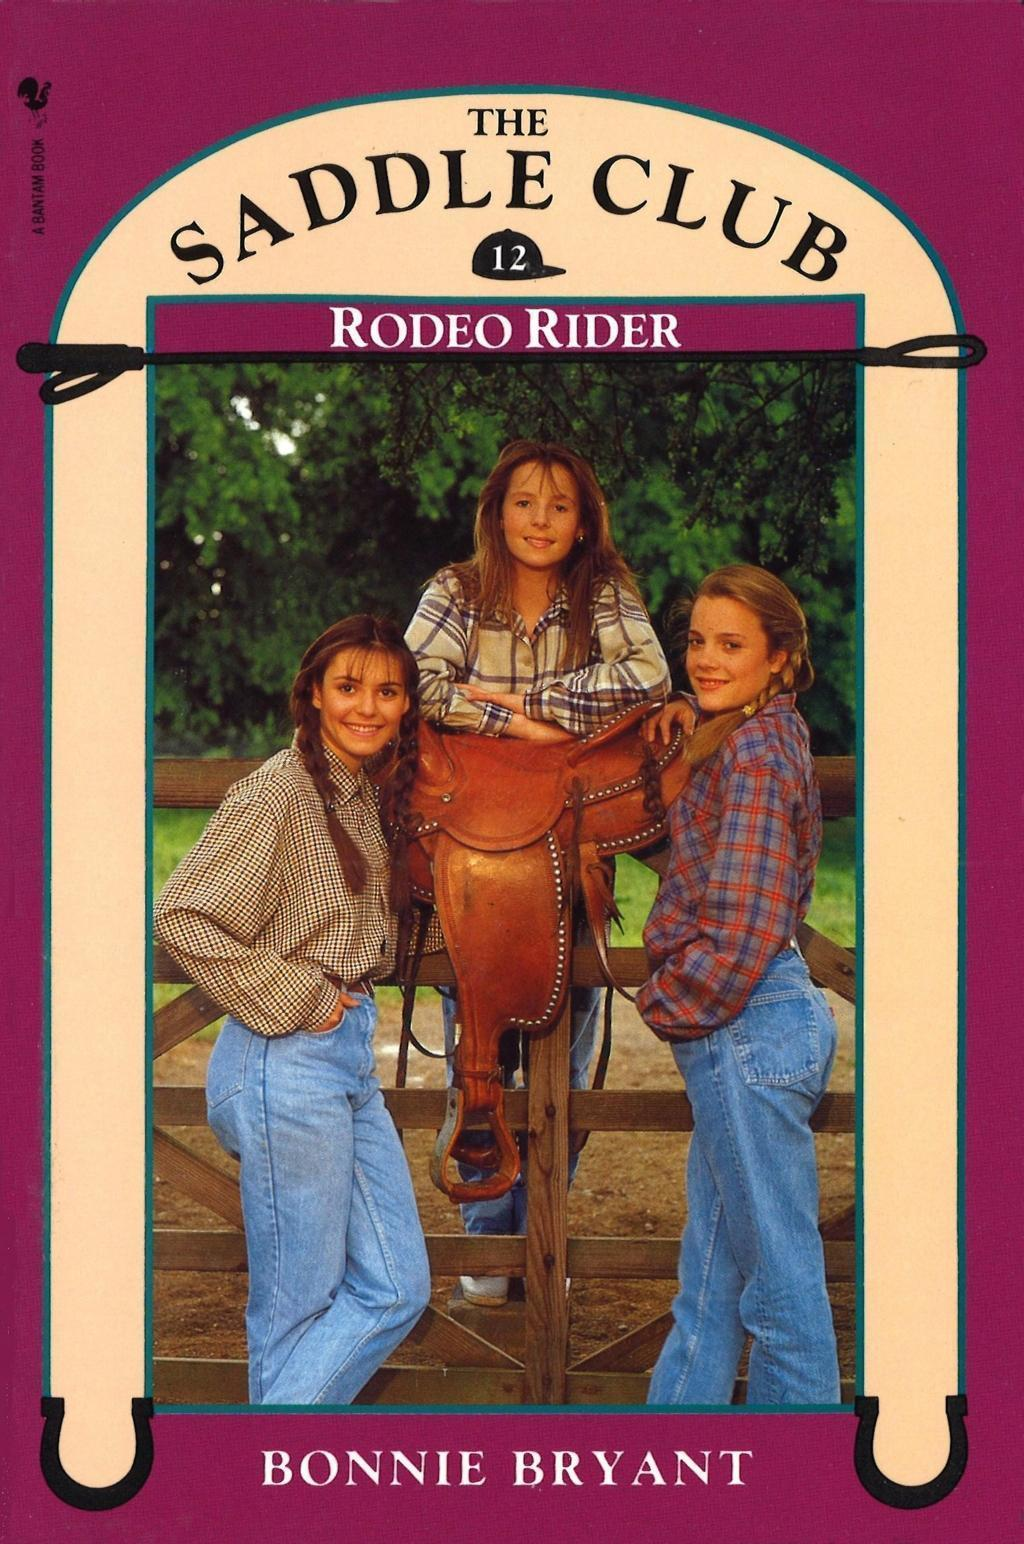 Saddle Club Book 12: Rodeo Rider